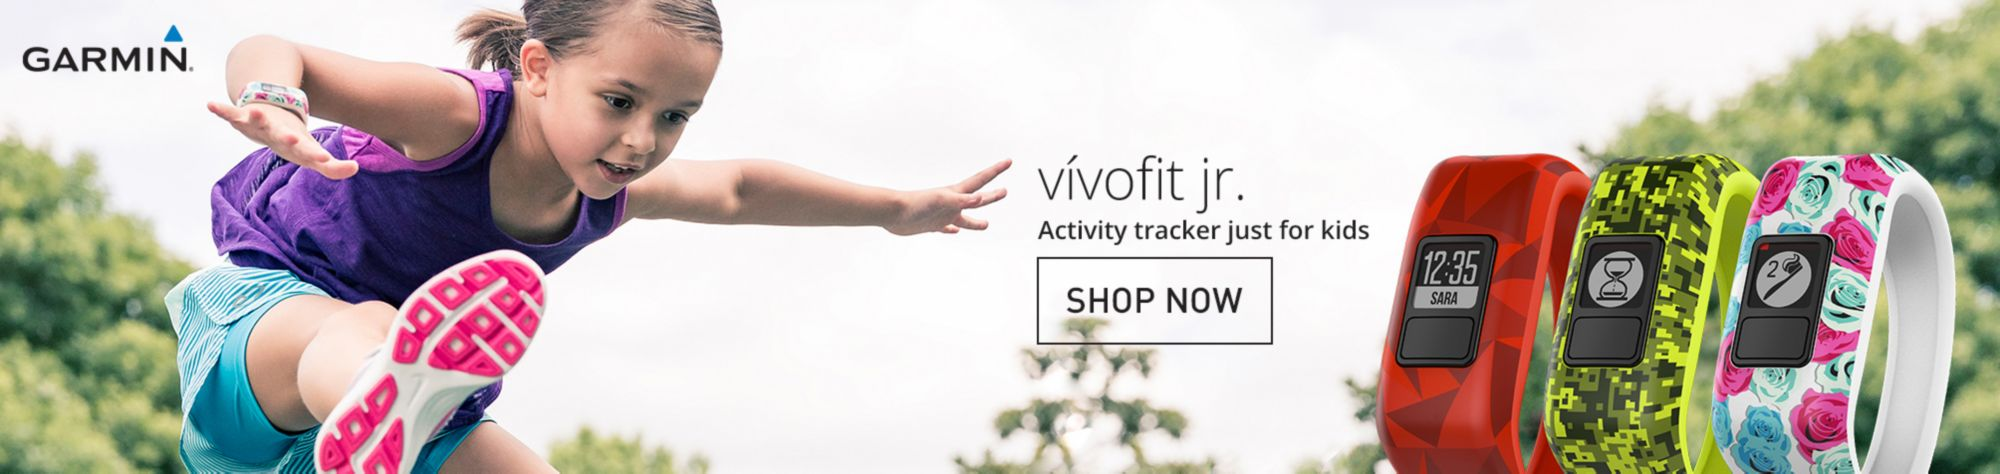 Shop vivo fit jr.